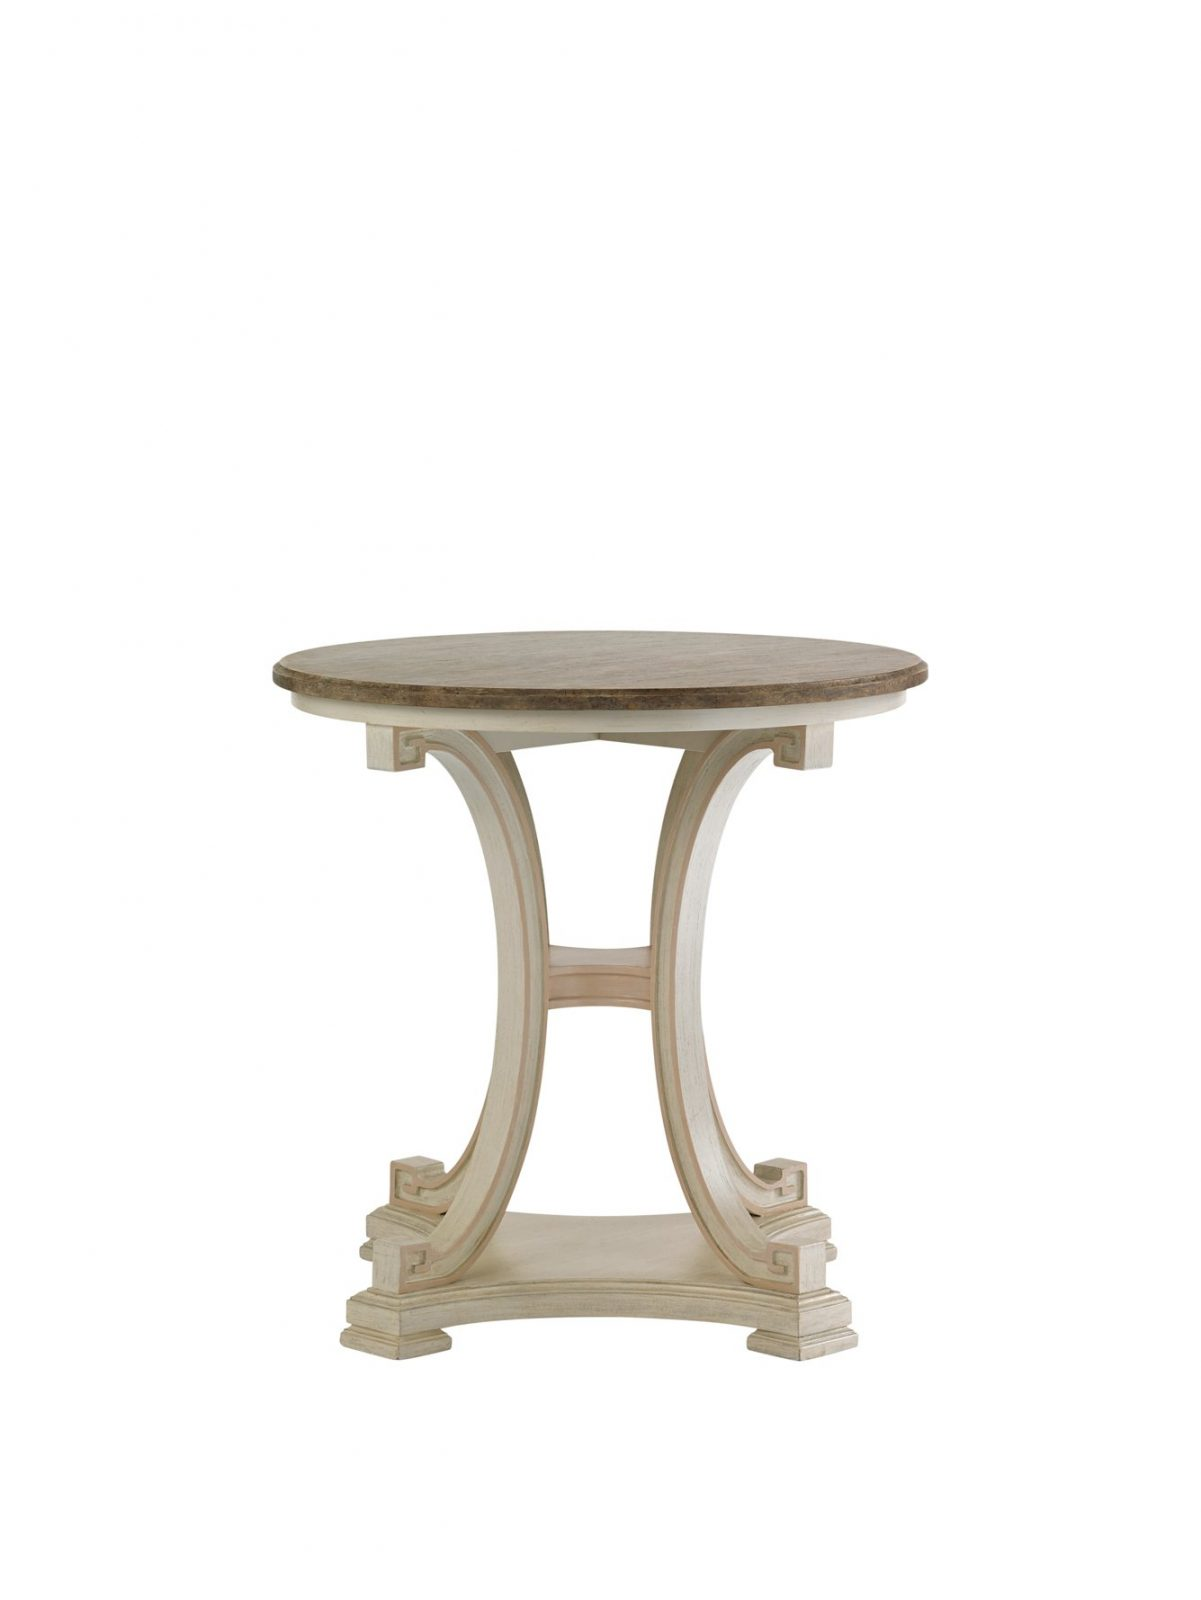 Preserve Myrtle round lamp table